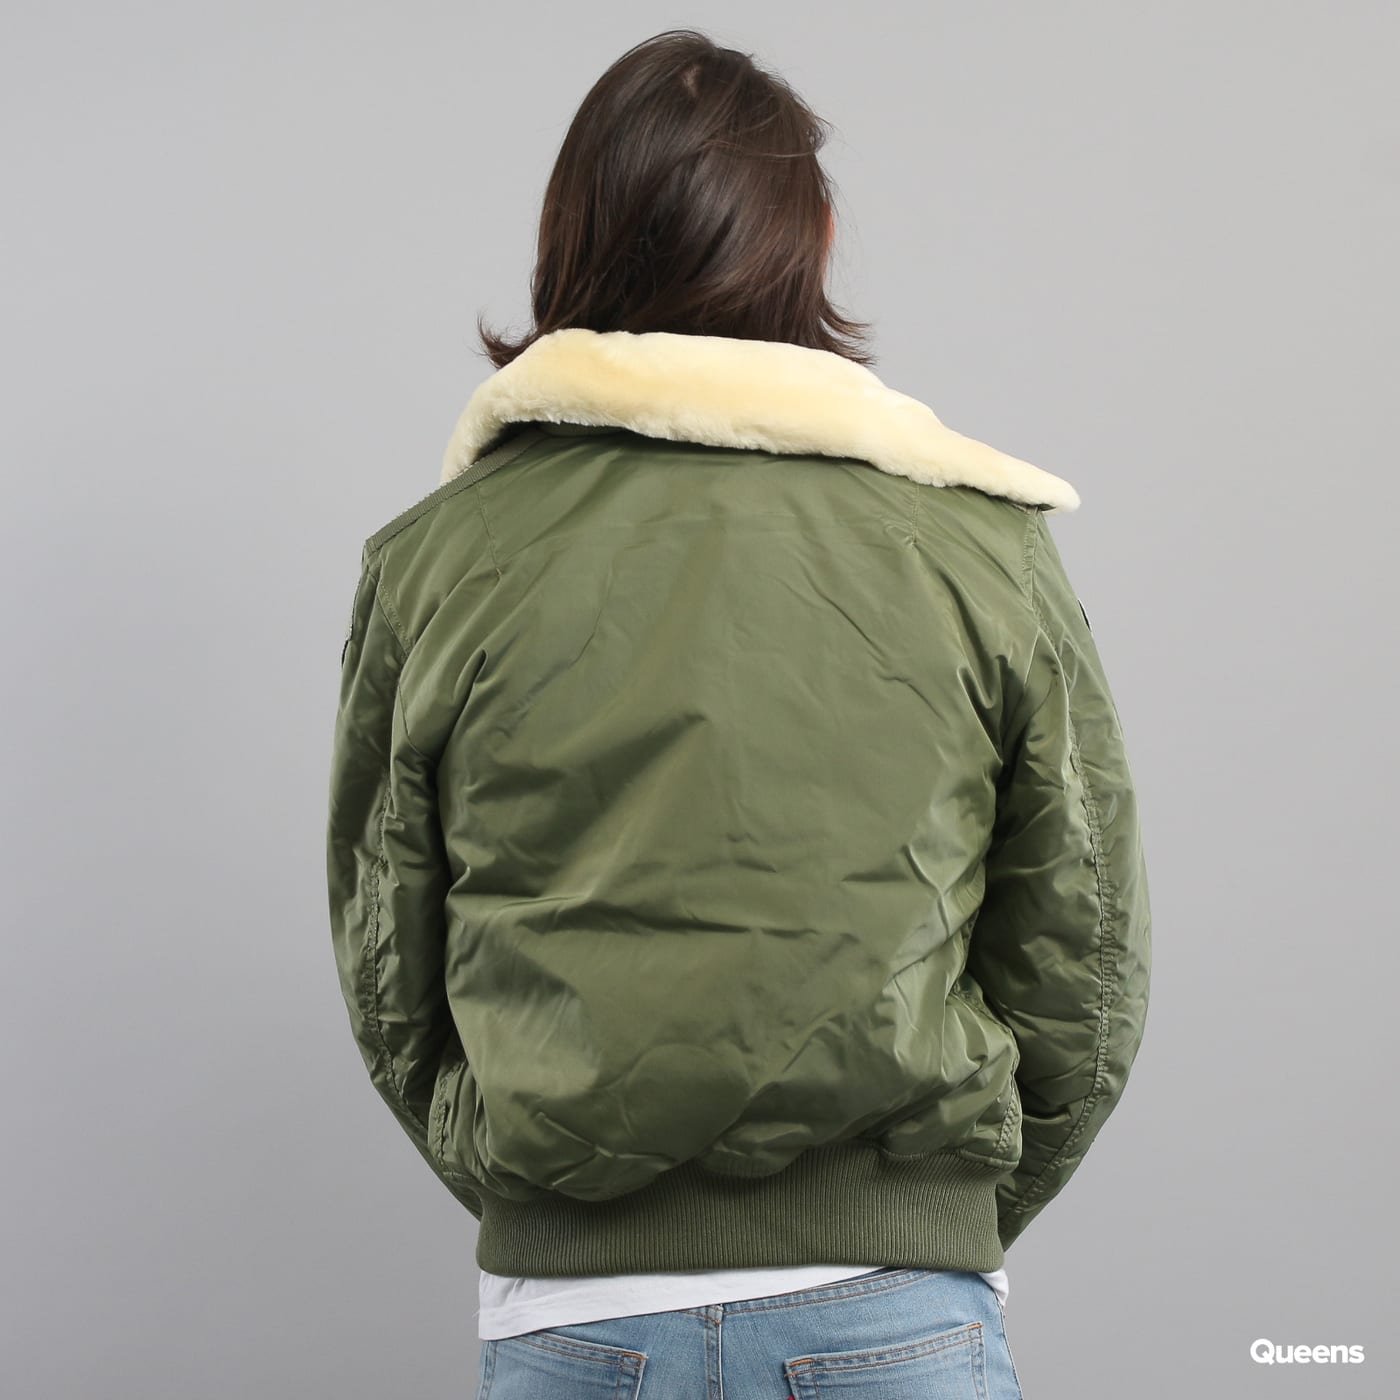 938485c99 ZvětšitZvětšitZvětšitZvětšitZvětšitZvětšitZvětšit. Alpha Industries  Injector III Patch olivová